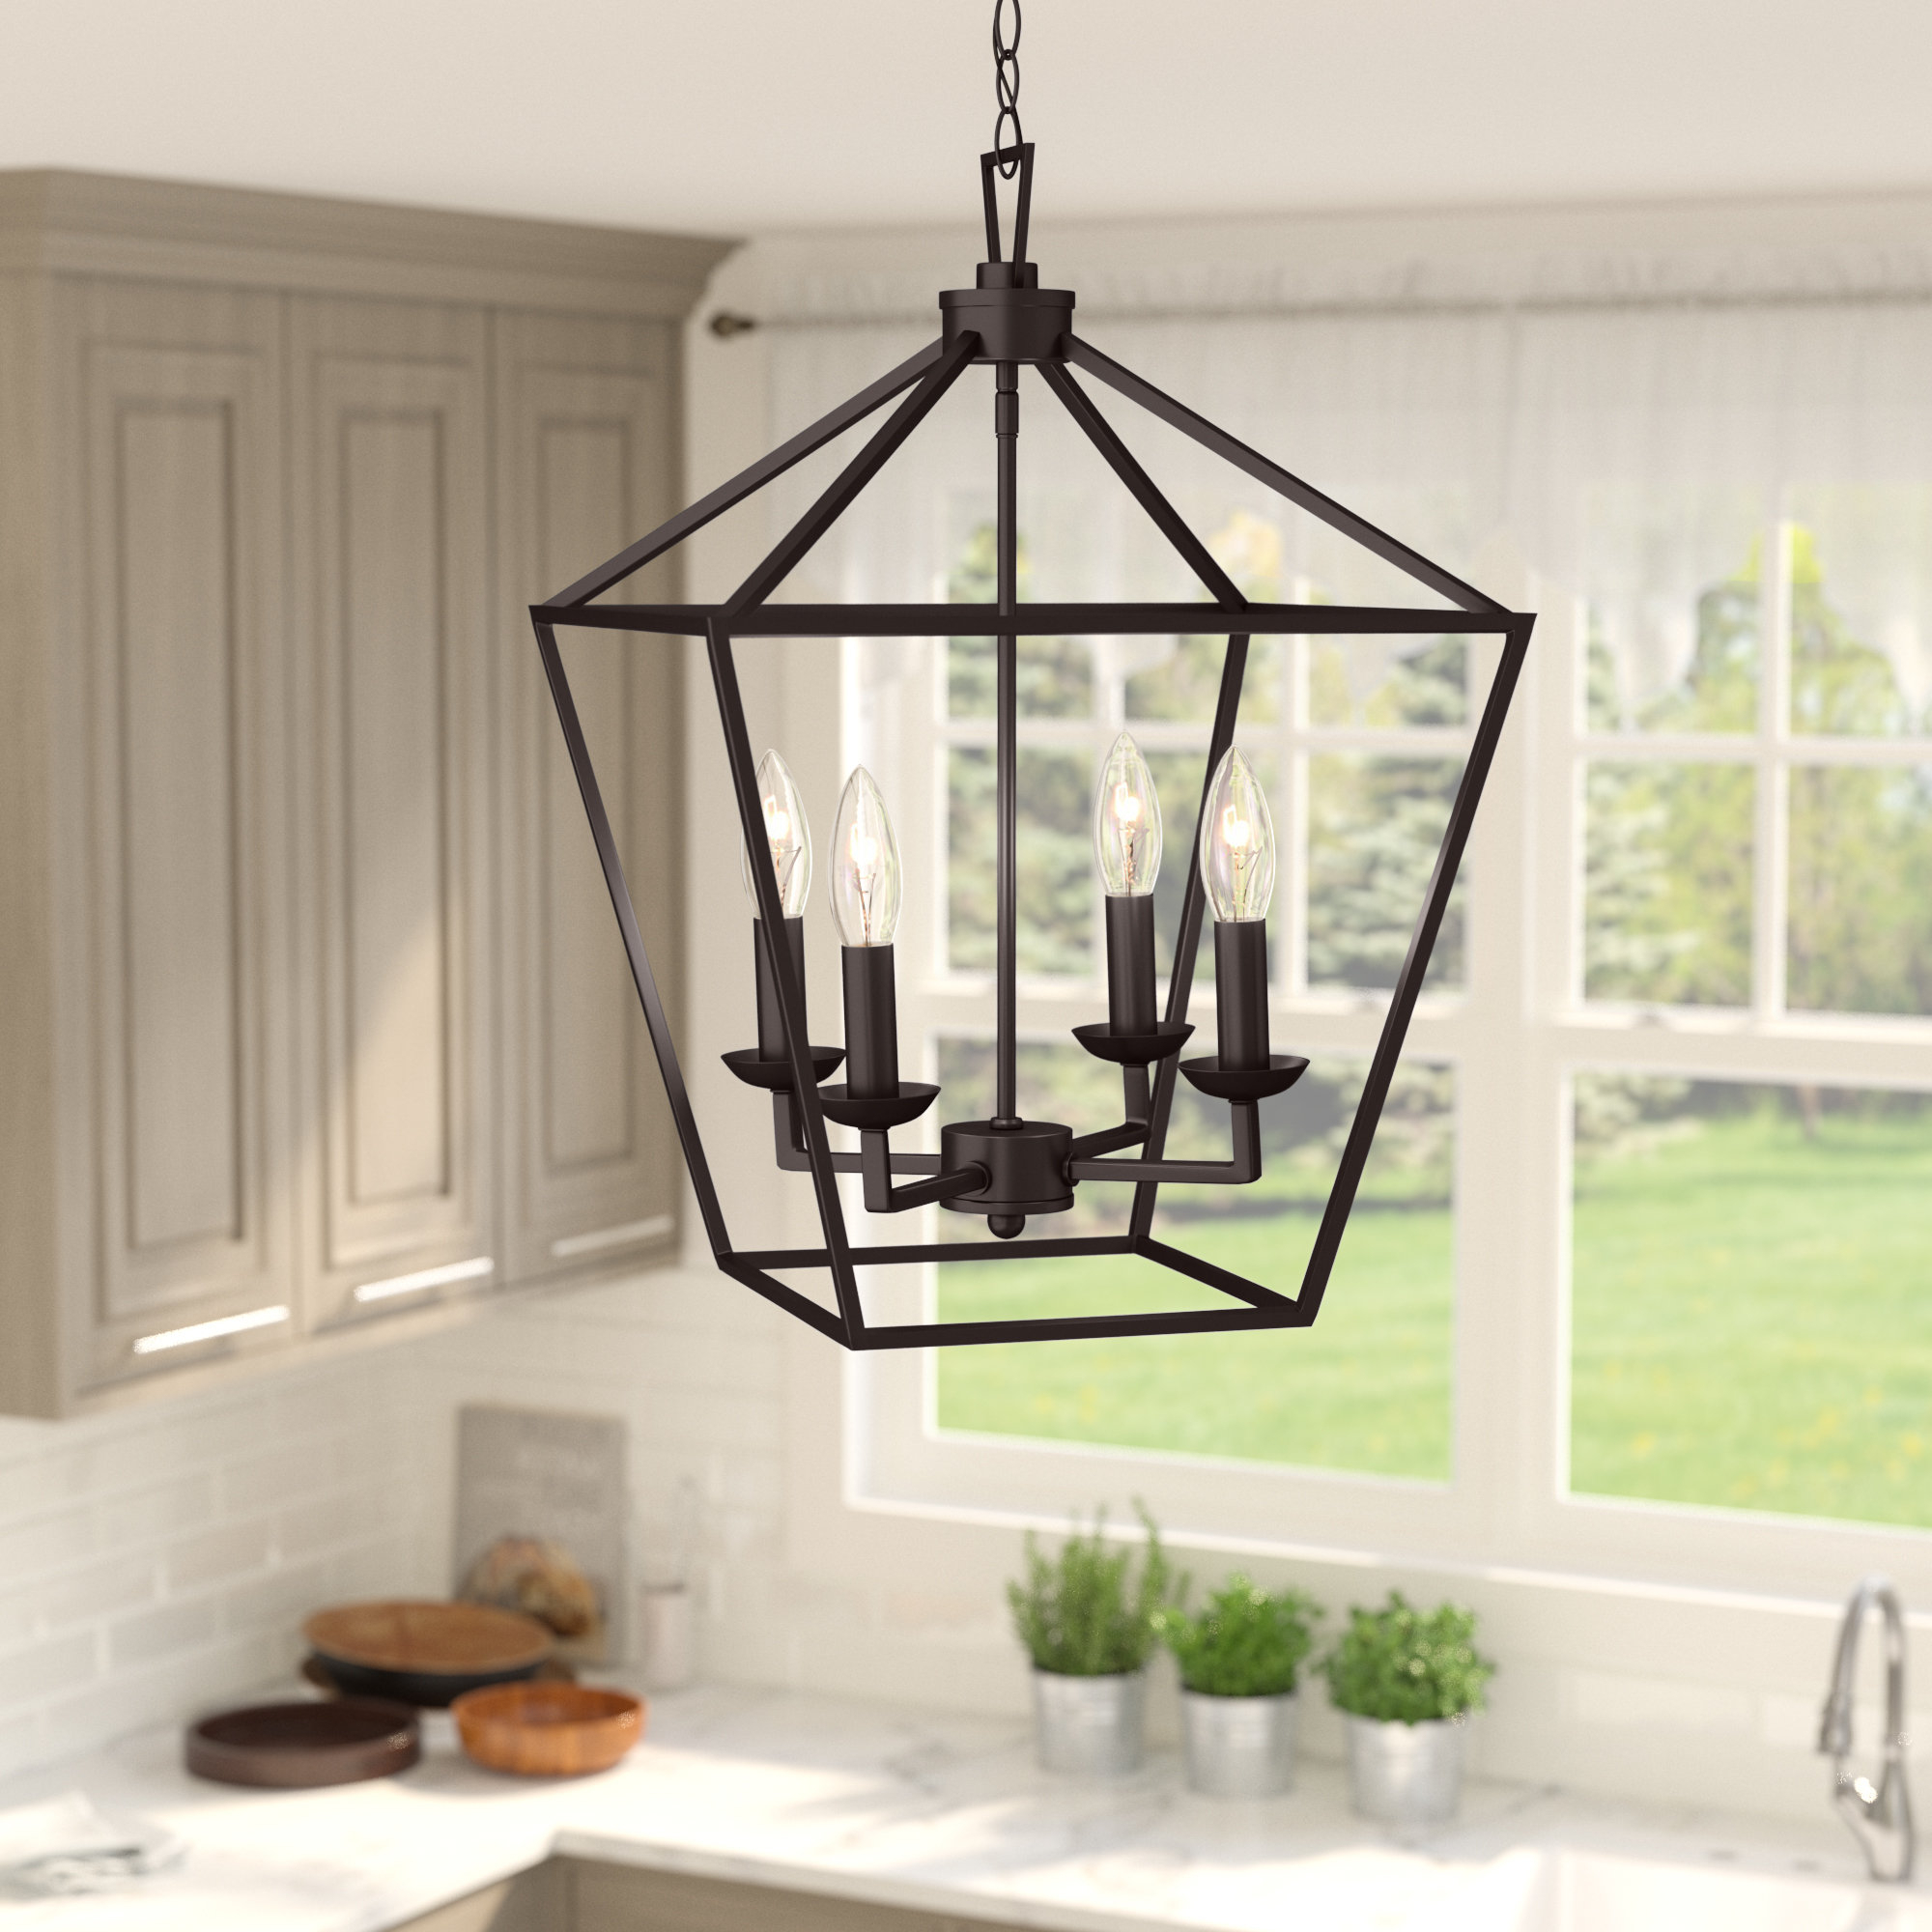 2020 Carmen 4 Light Lantern Geometric Pendant With Regard To Finnick 4 Light Foyer Pendants (View 4 of 20)